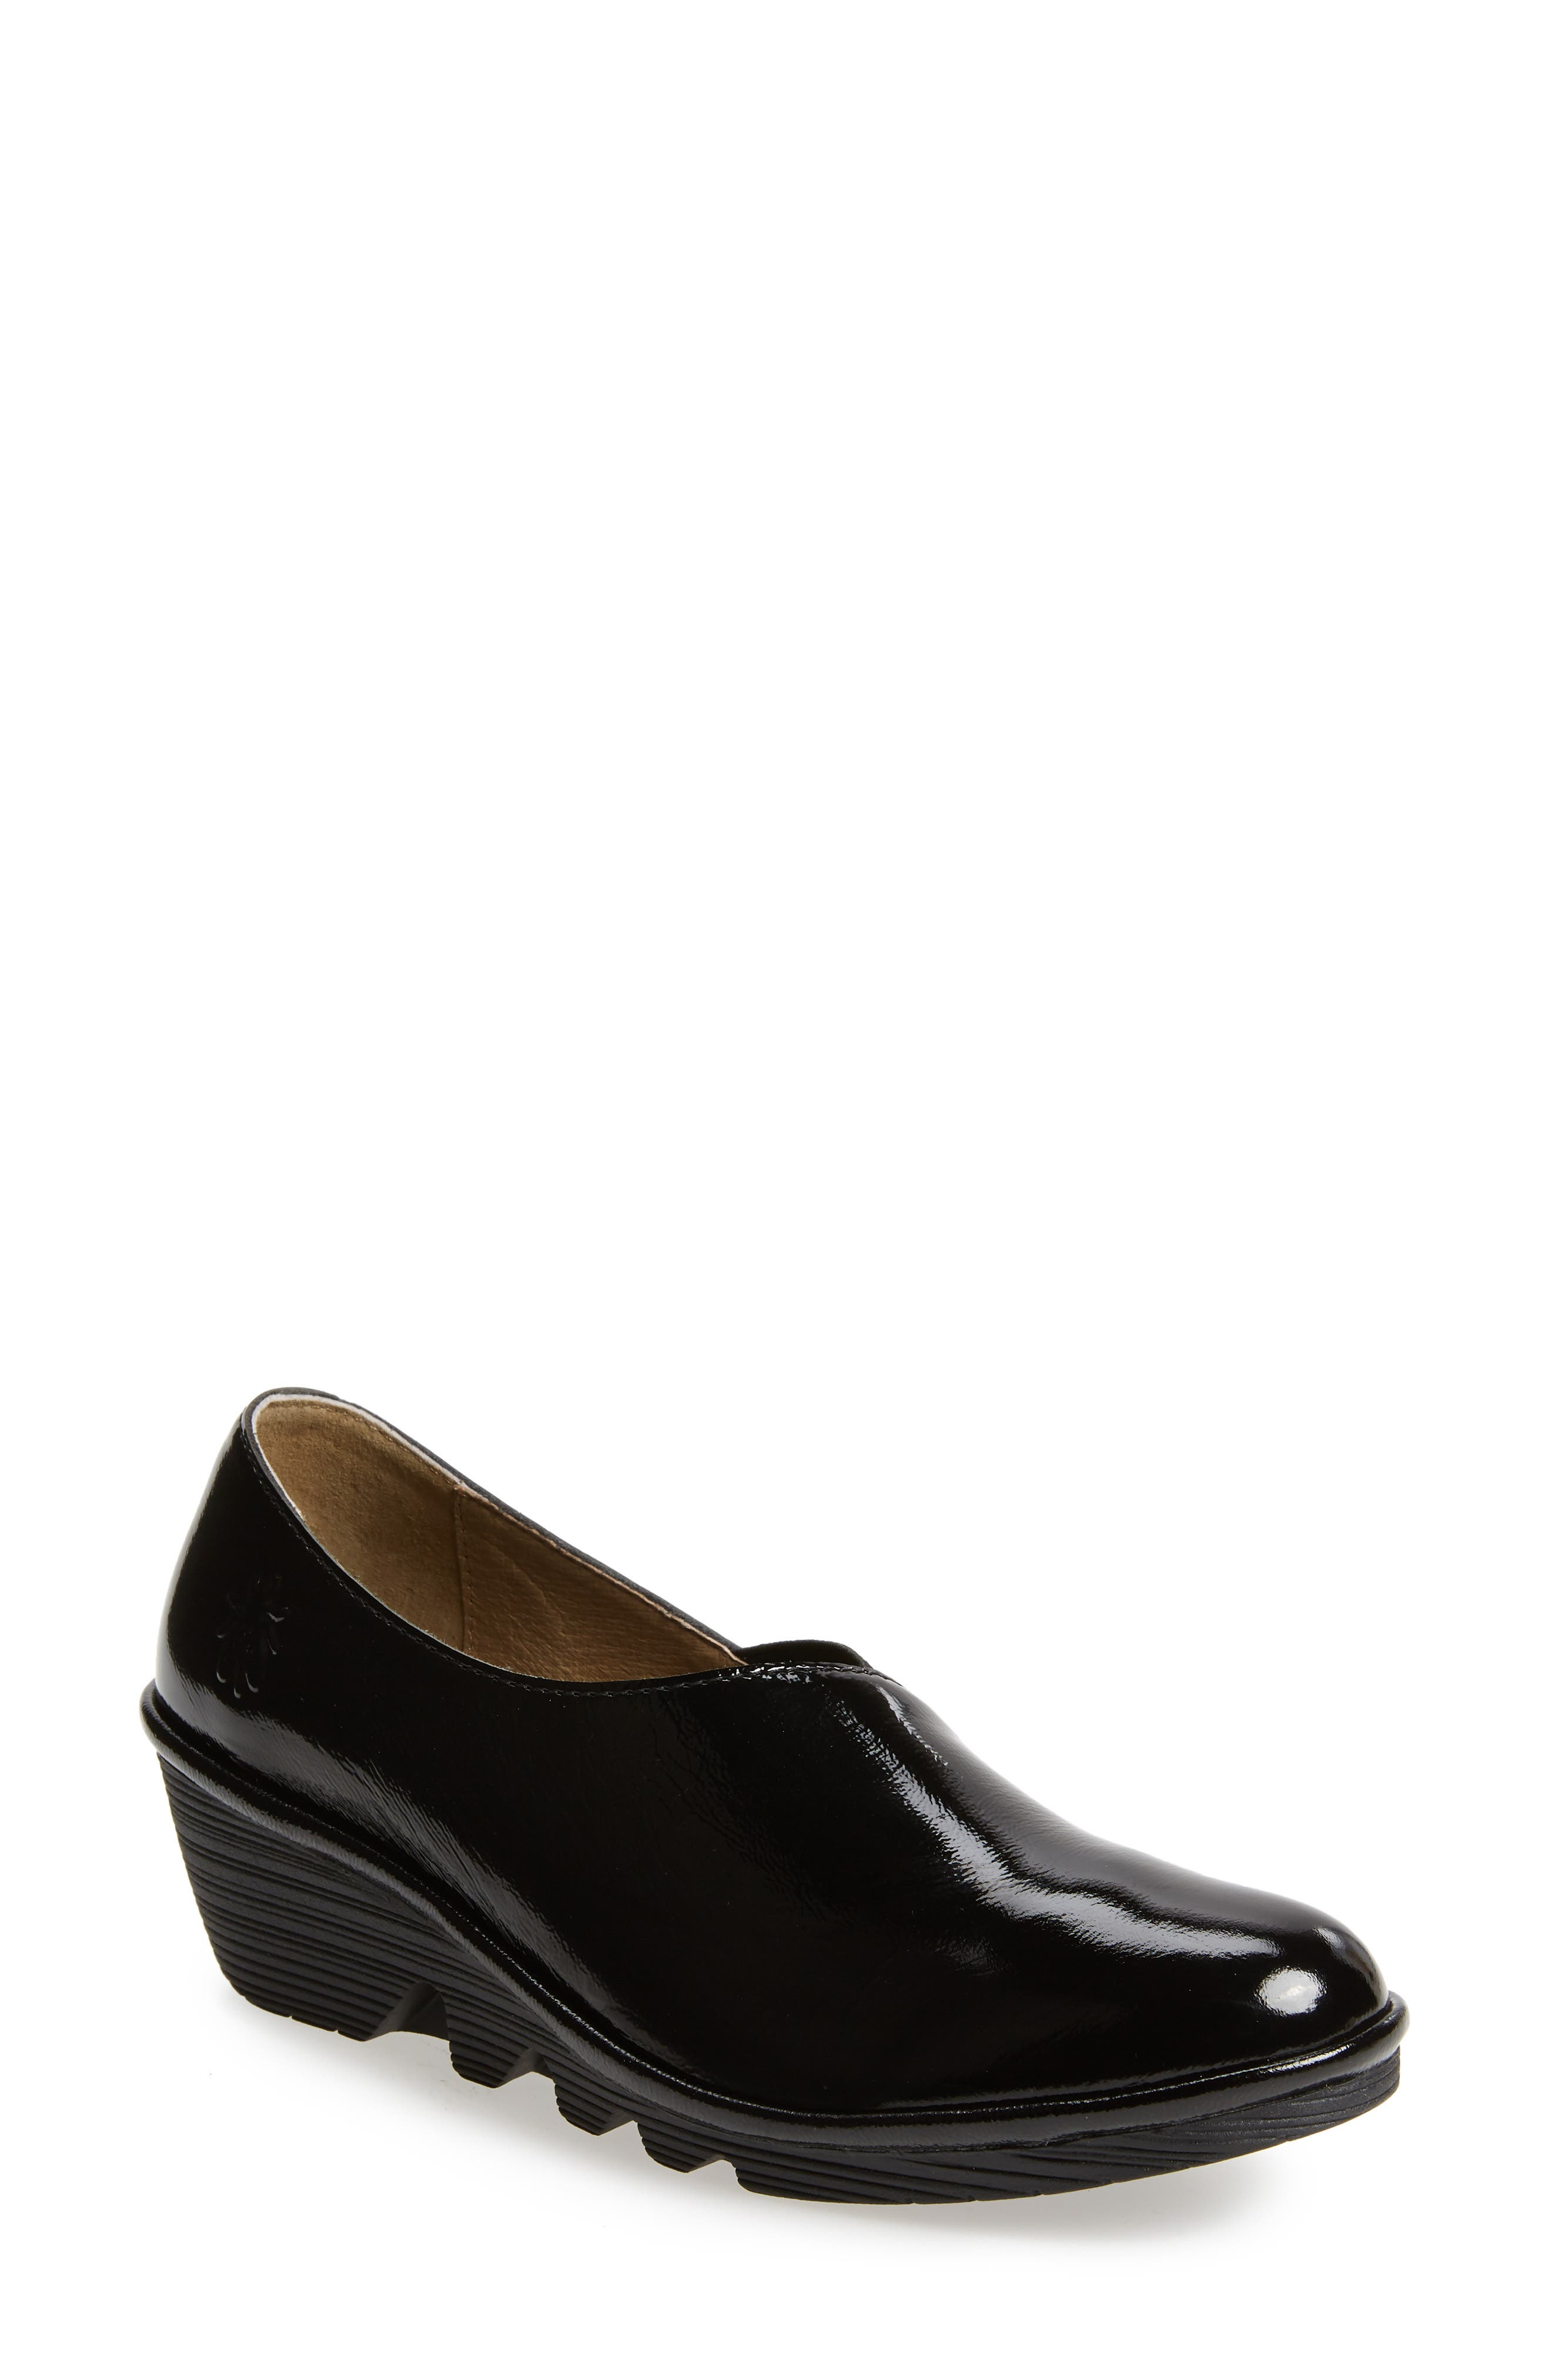 FLY LONDON Peso Wedge, Main, color, BLACK PATENT